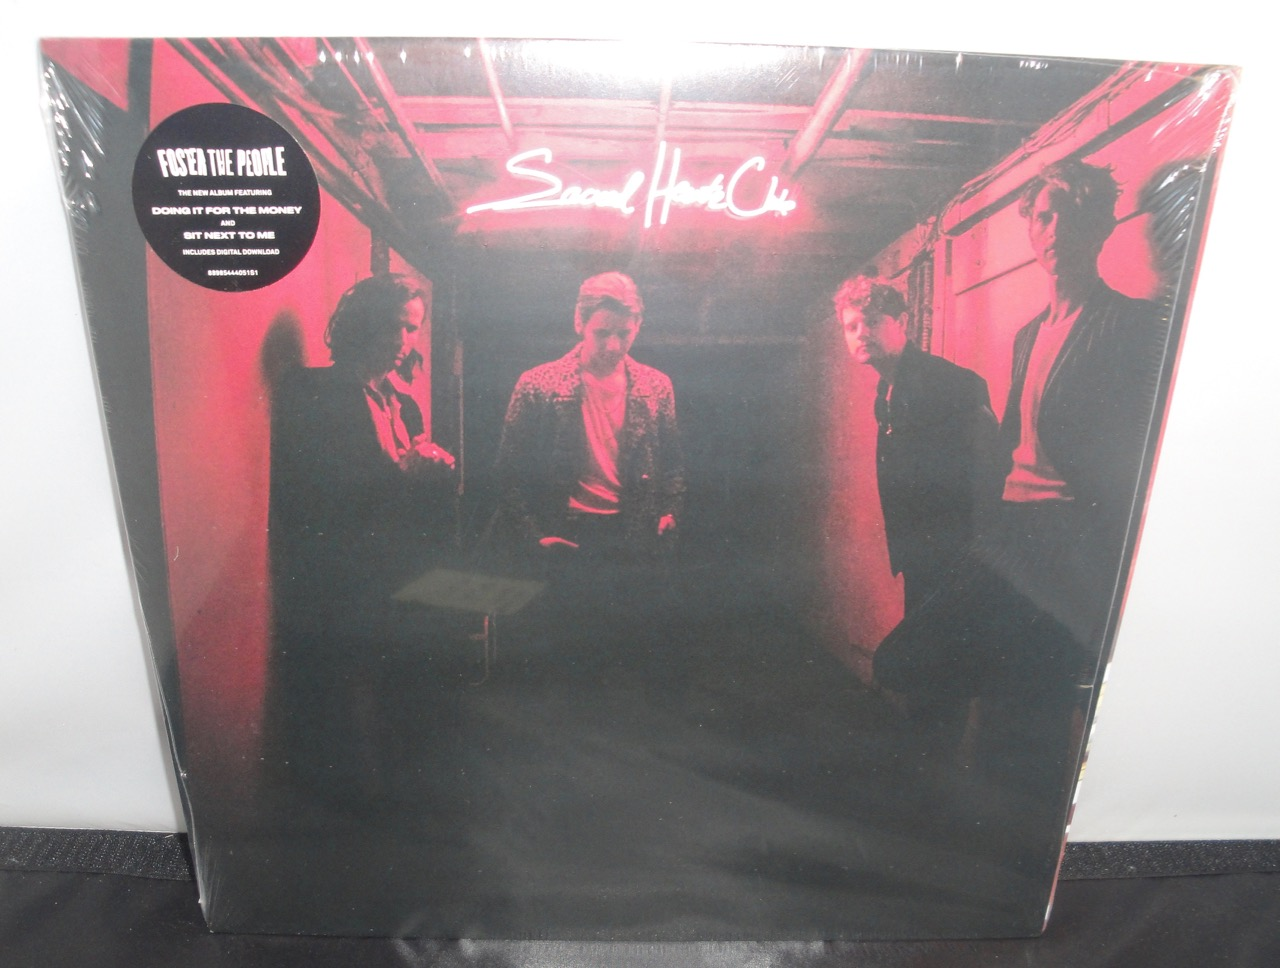 Foster the People - Sacred Hearts Club - 150 Gram Vinyl, Gatefold, LP, 2017